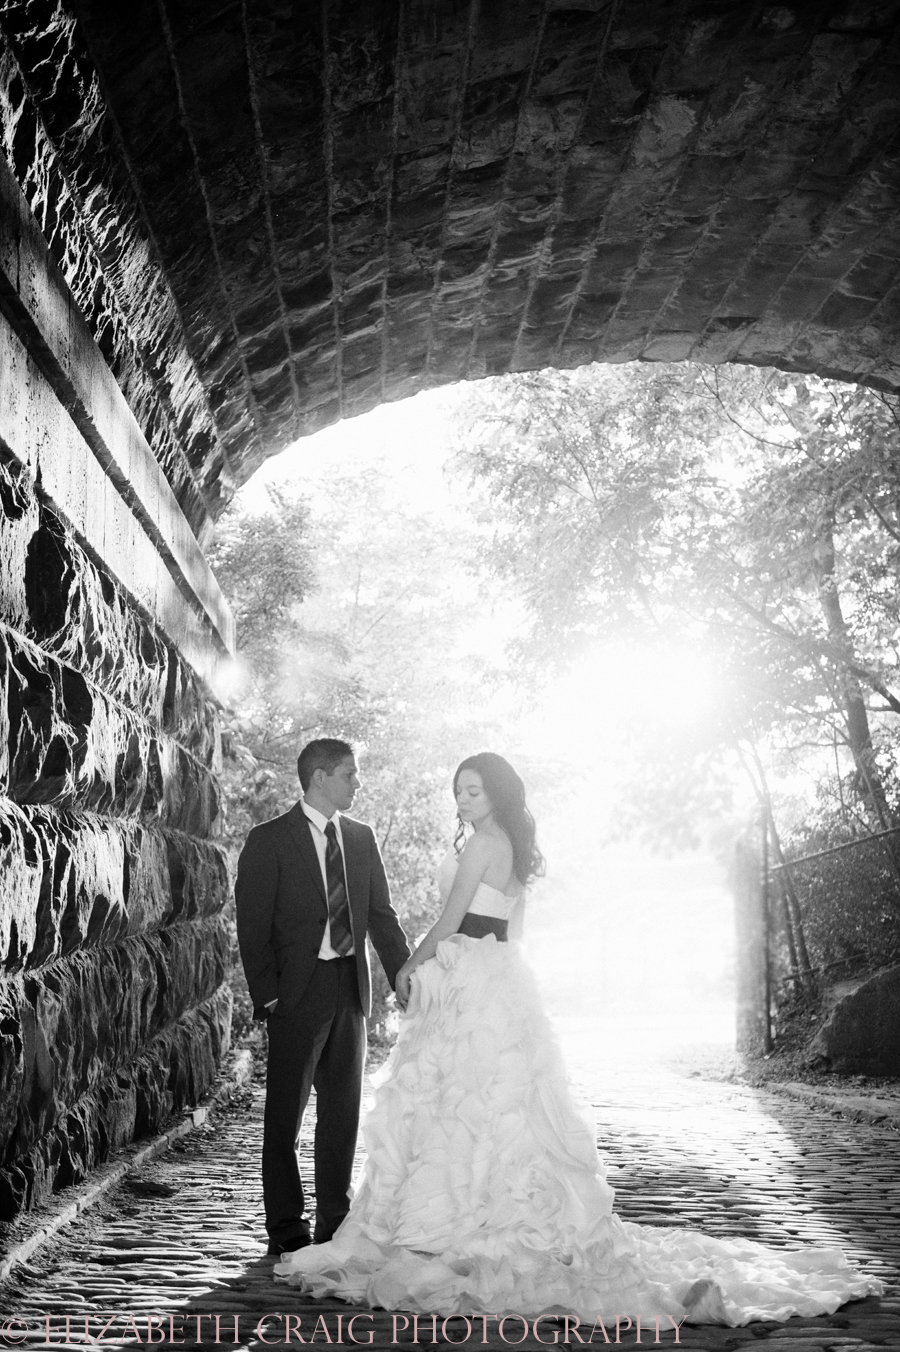 Romantic Wedding Photos | Elizabeth Craig Photography-018